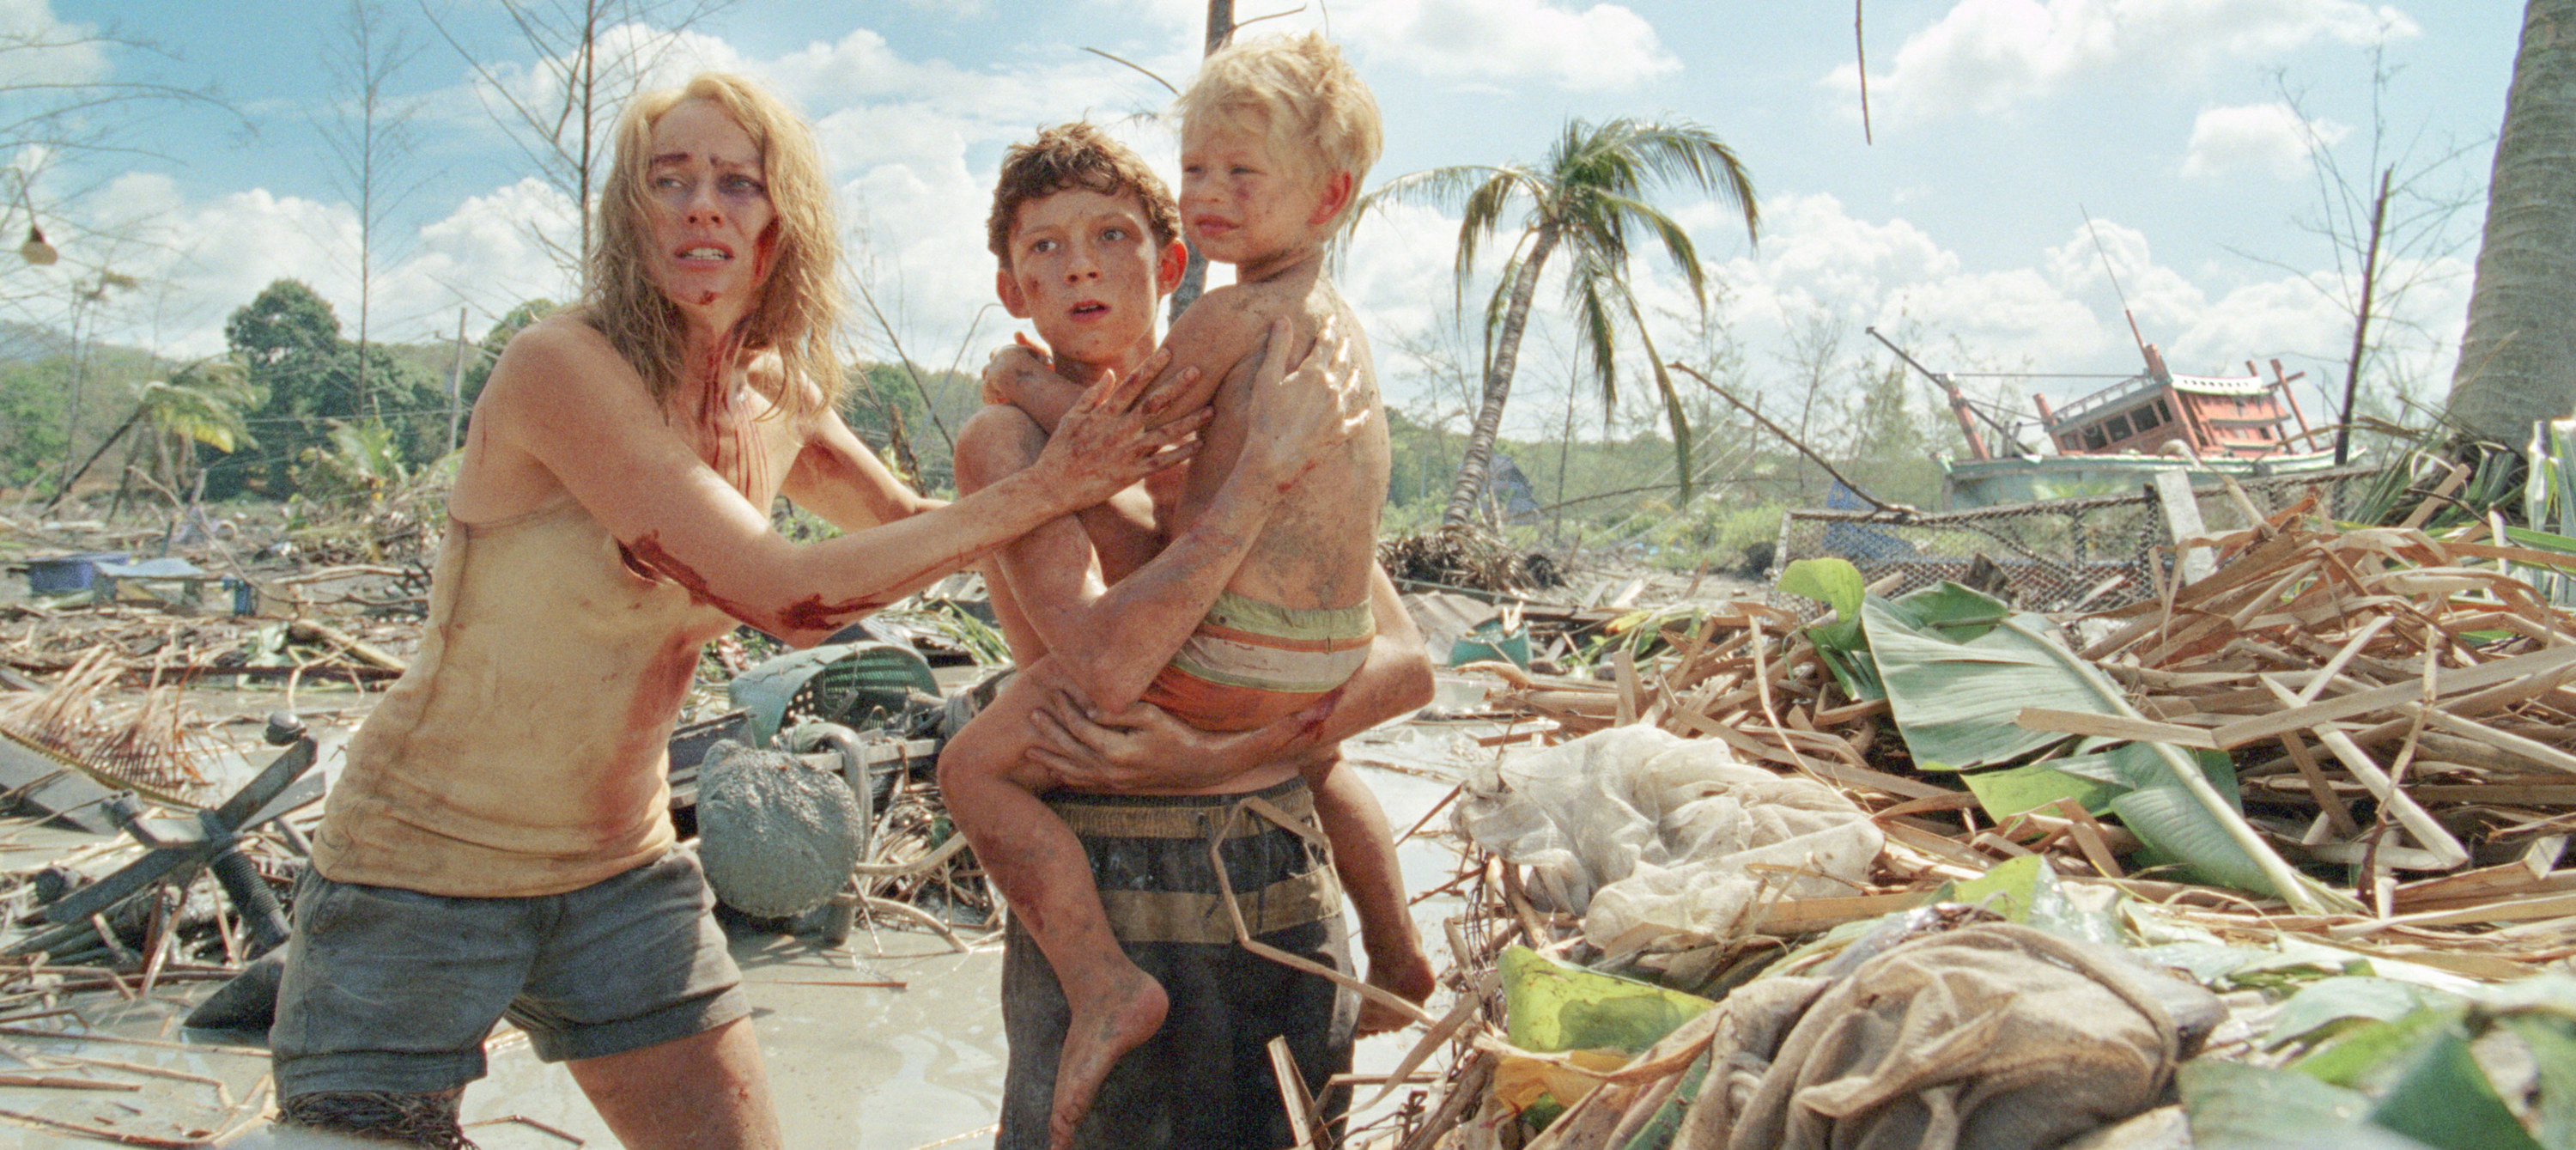 Naomi Watts and Tom Holland in character bleeding and climbing out of debris and water